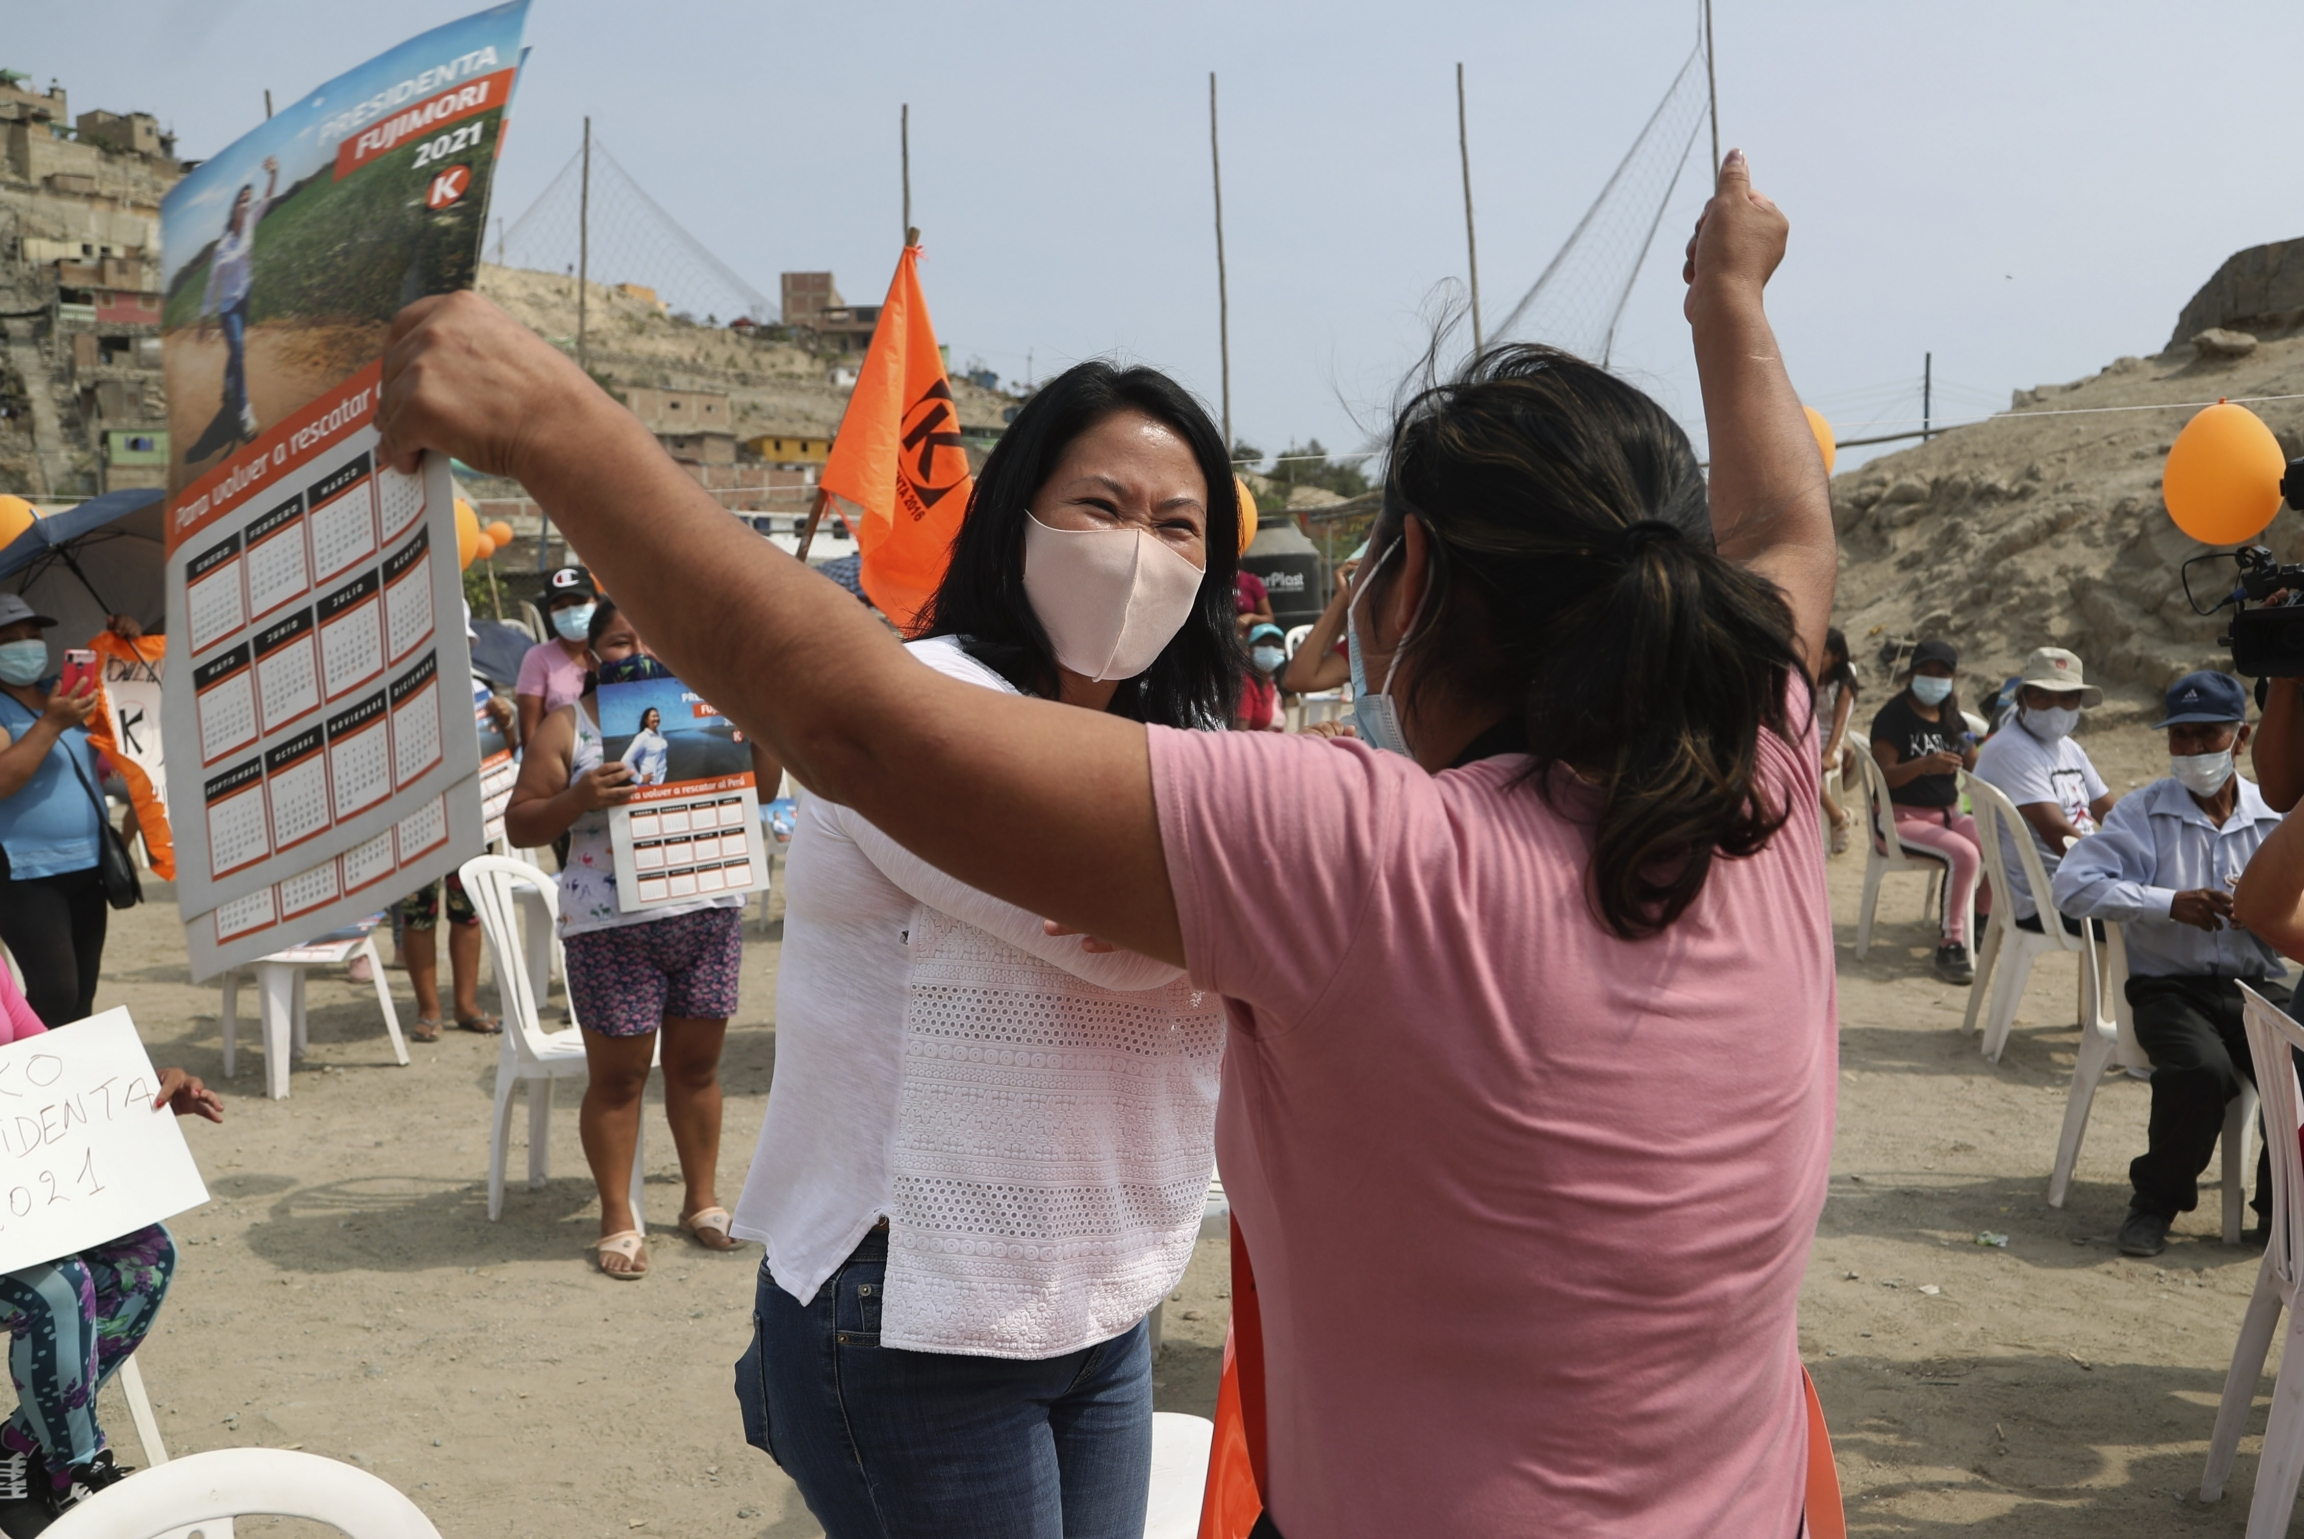 Wearing a mask to curb the spread of the new coronavirus, presidential candidate and daughter of imprisoned ex-President Alberto Fujimori, Keiko Fujimori, of the Popular Force party, greets a supporter as she campaigns in San Juan de Lurigancho on the out